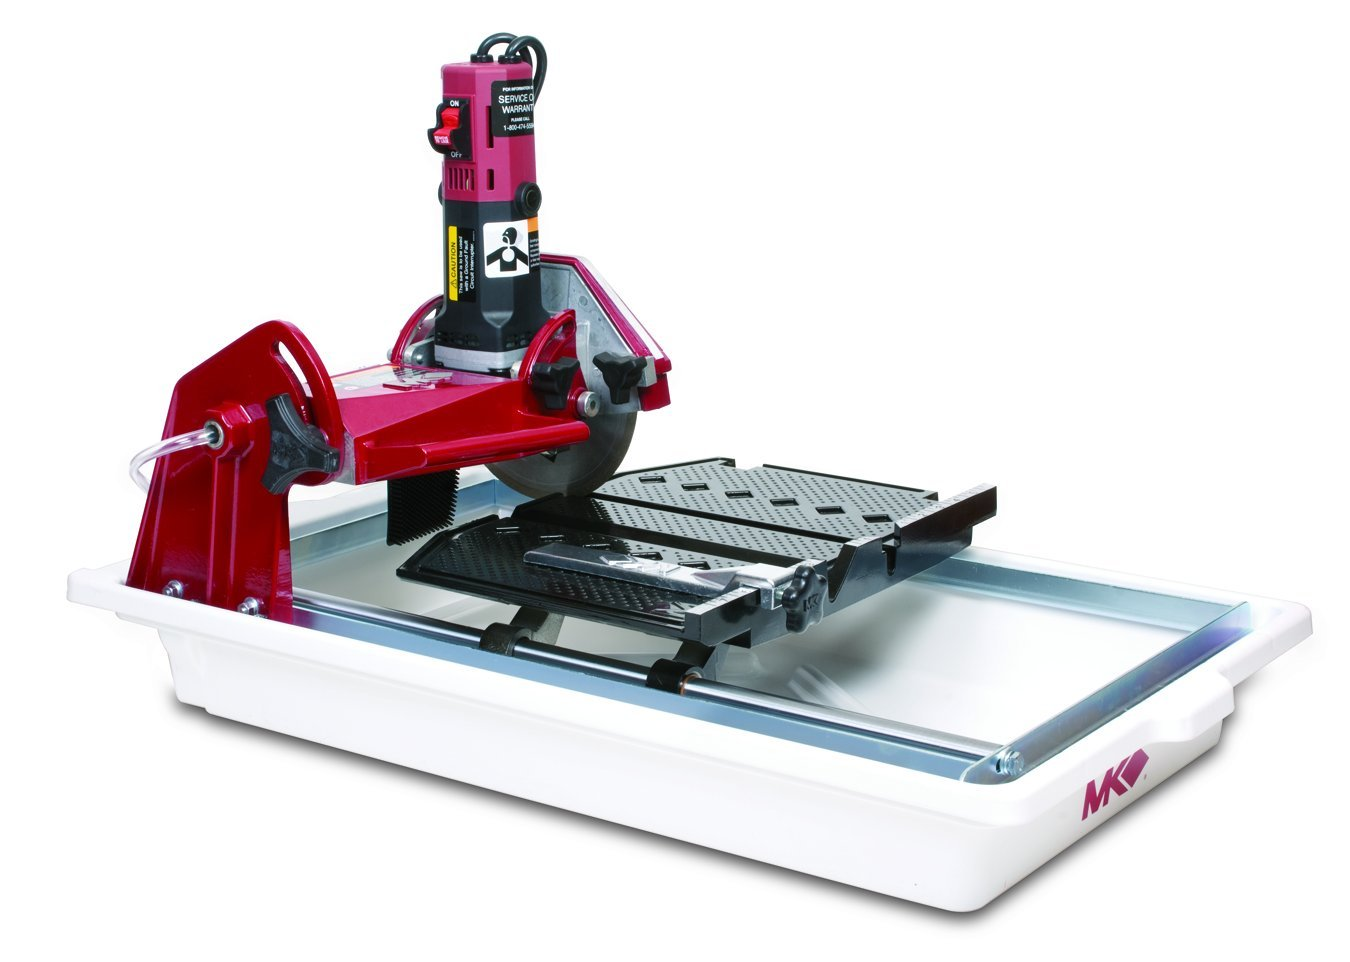 MK 370EXP 1 1 4 HP 7 Inch Wet Cutting Tile Saw